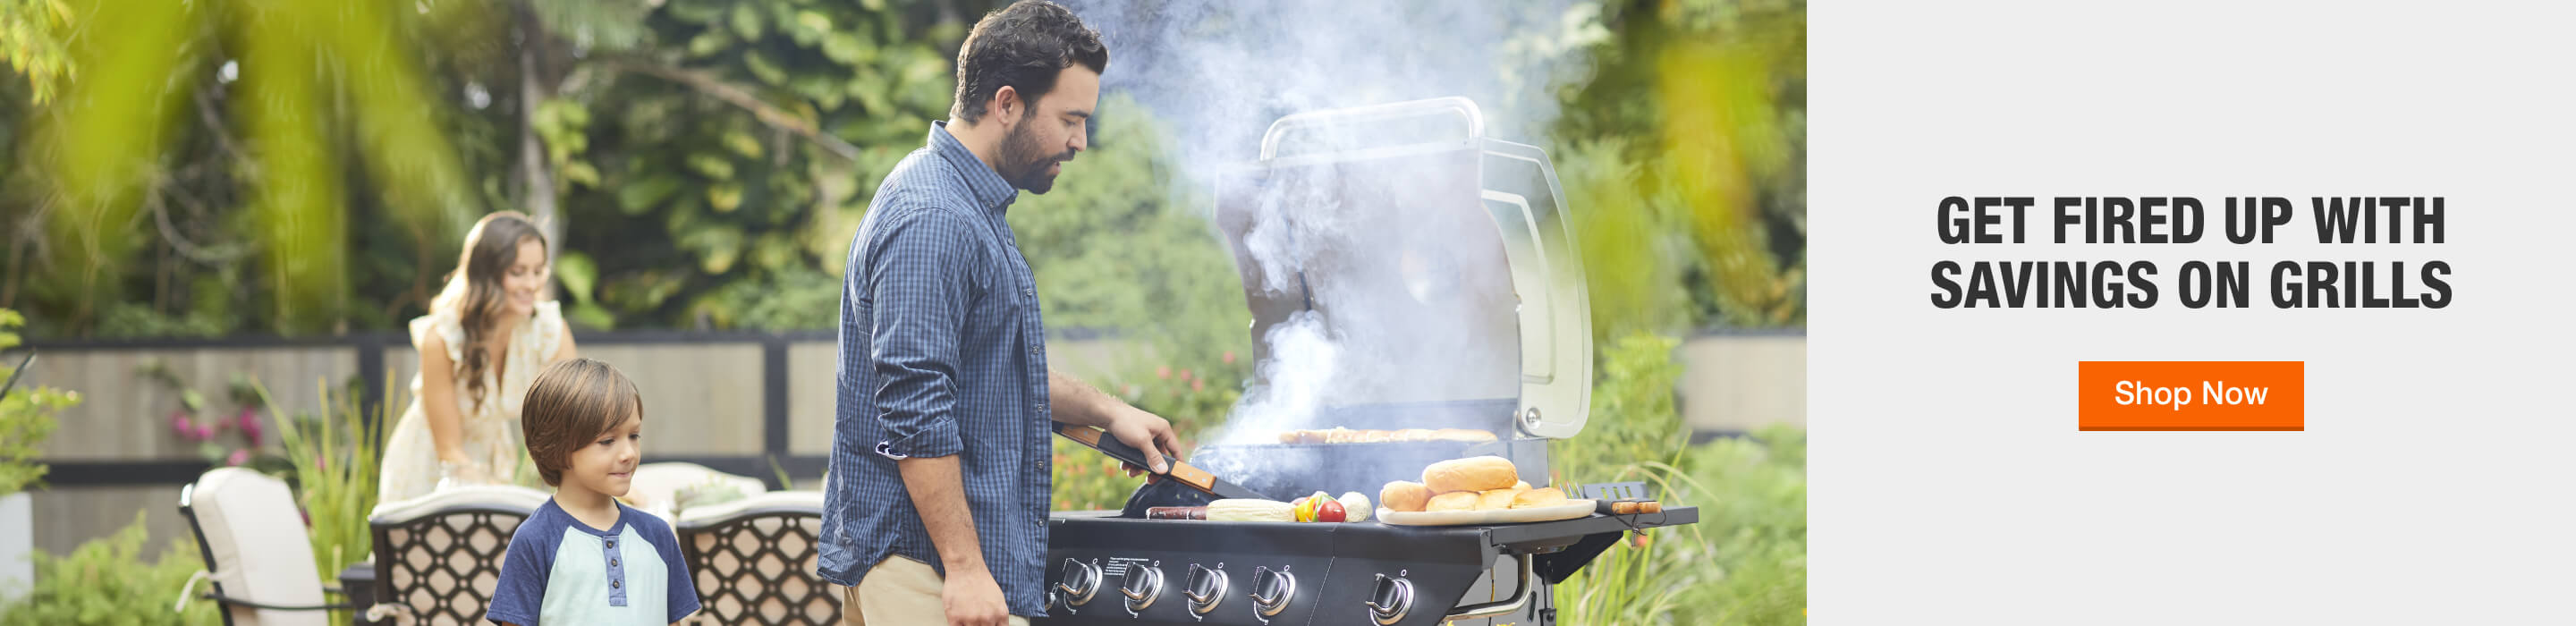 GET FIRED UP WITH SAVINGS ON GRILLS